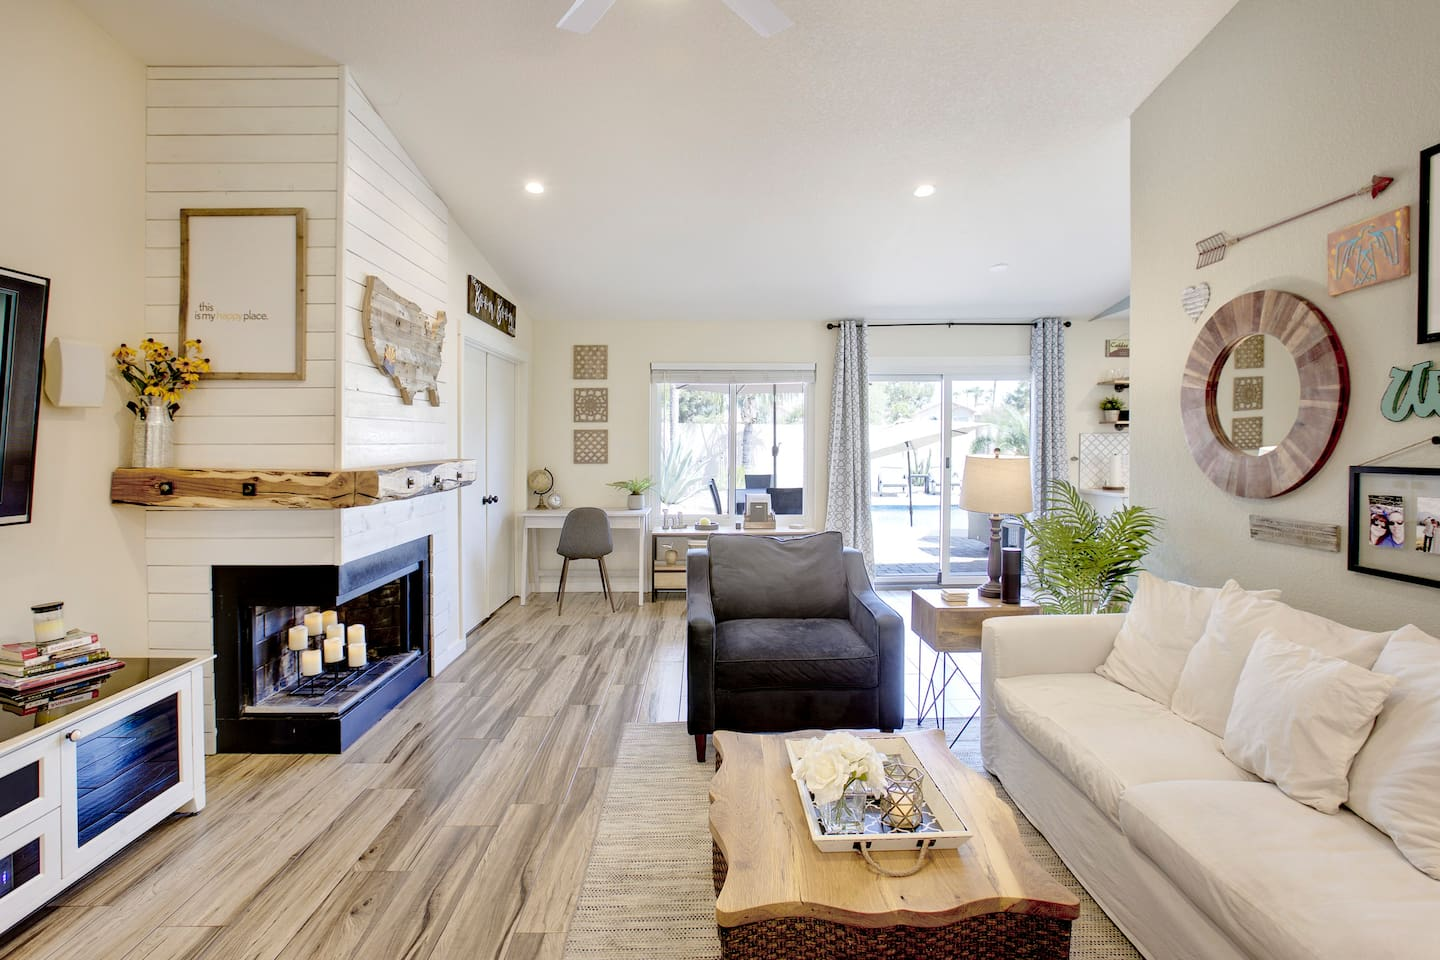 Vaulted ceilings and an open floor plan keep the space light and airy. The fireplace features ship lap and a gorgeous raw edge mantle. Beautiful wood look tile is found throughout the main spaces of the home.